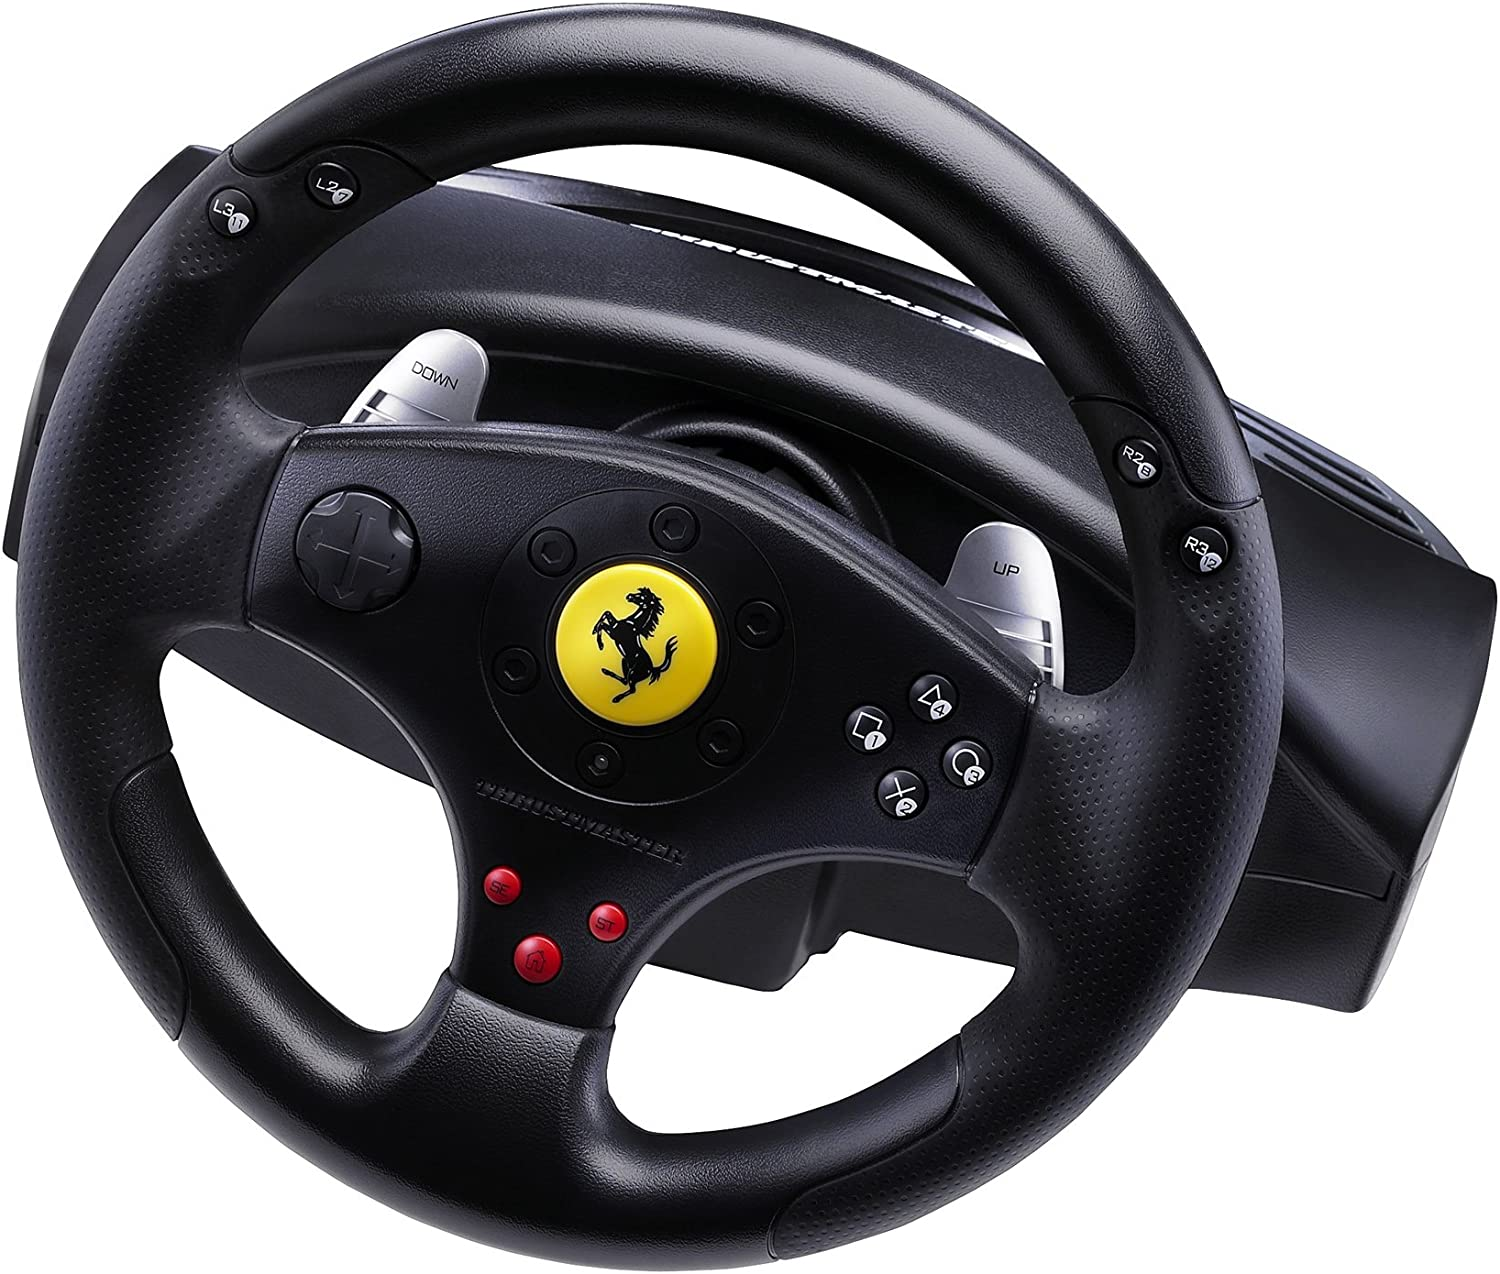 Thrustmaster Ferrari GT Experience Racing Wheel for PS3 and PC Hercules 2960697 ARPTRTMST2960697B12345